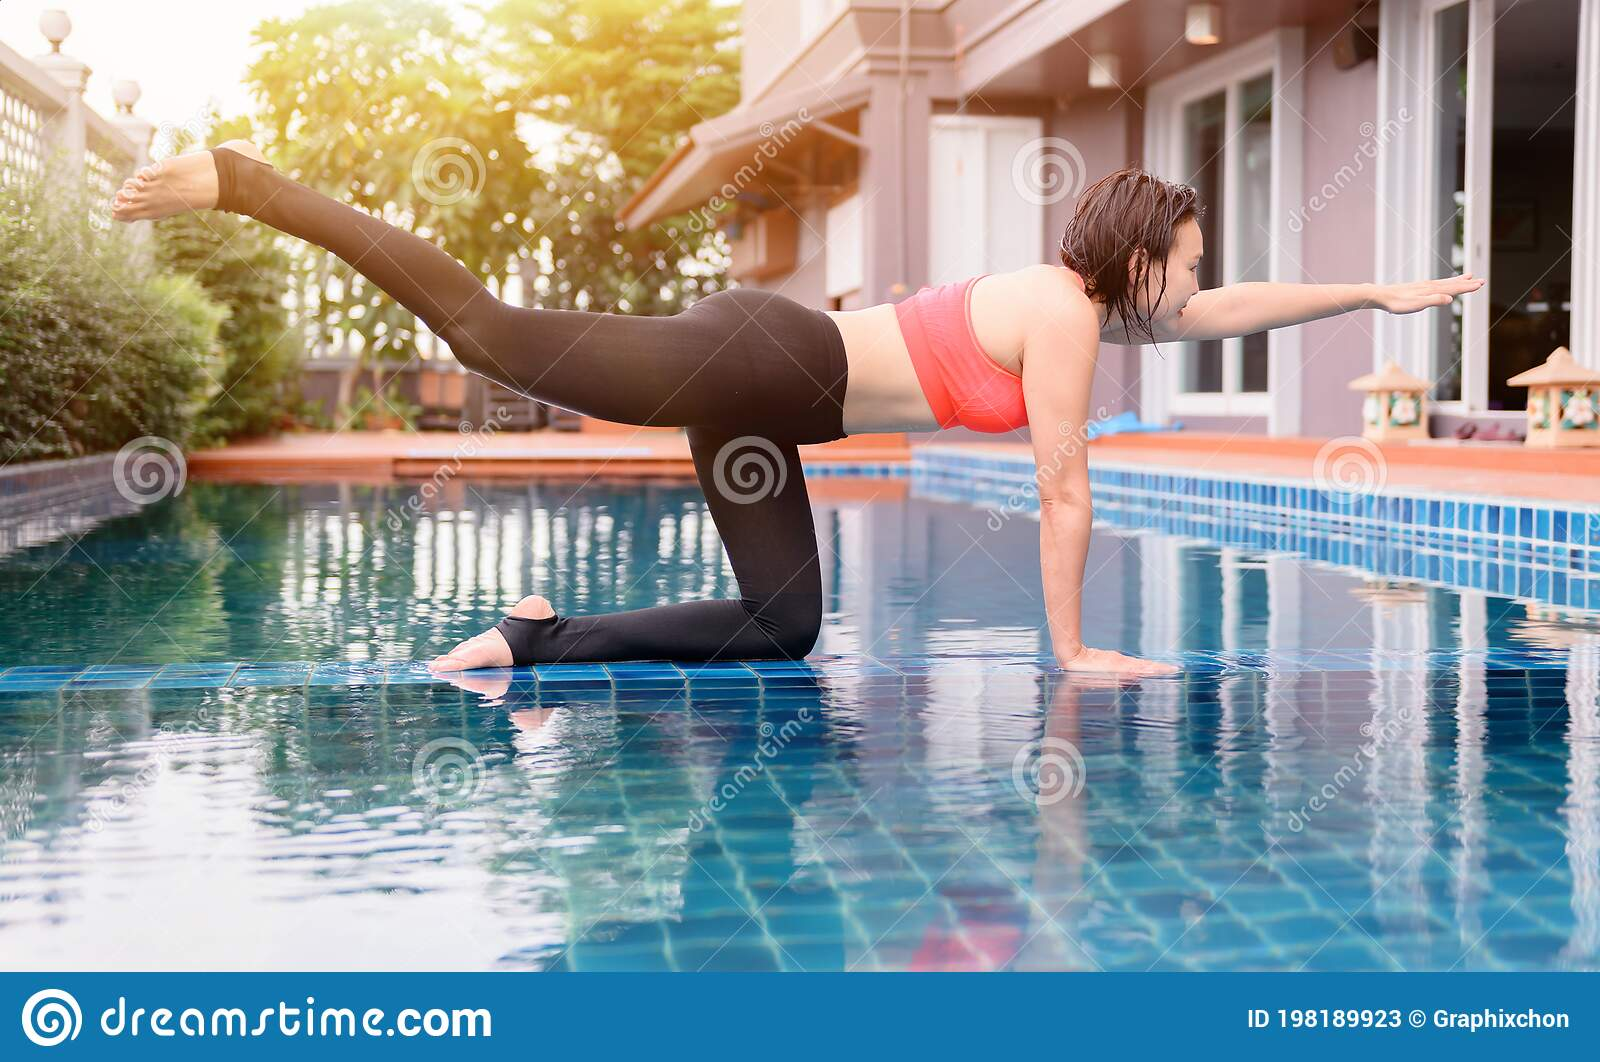 Asian Woman Yoga Breathing And Meditation Alone At Swimming Pool At Home Outdoor Exercise And Workout For Healthy Stock Image Image Of Alone Recreation 198189923